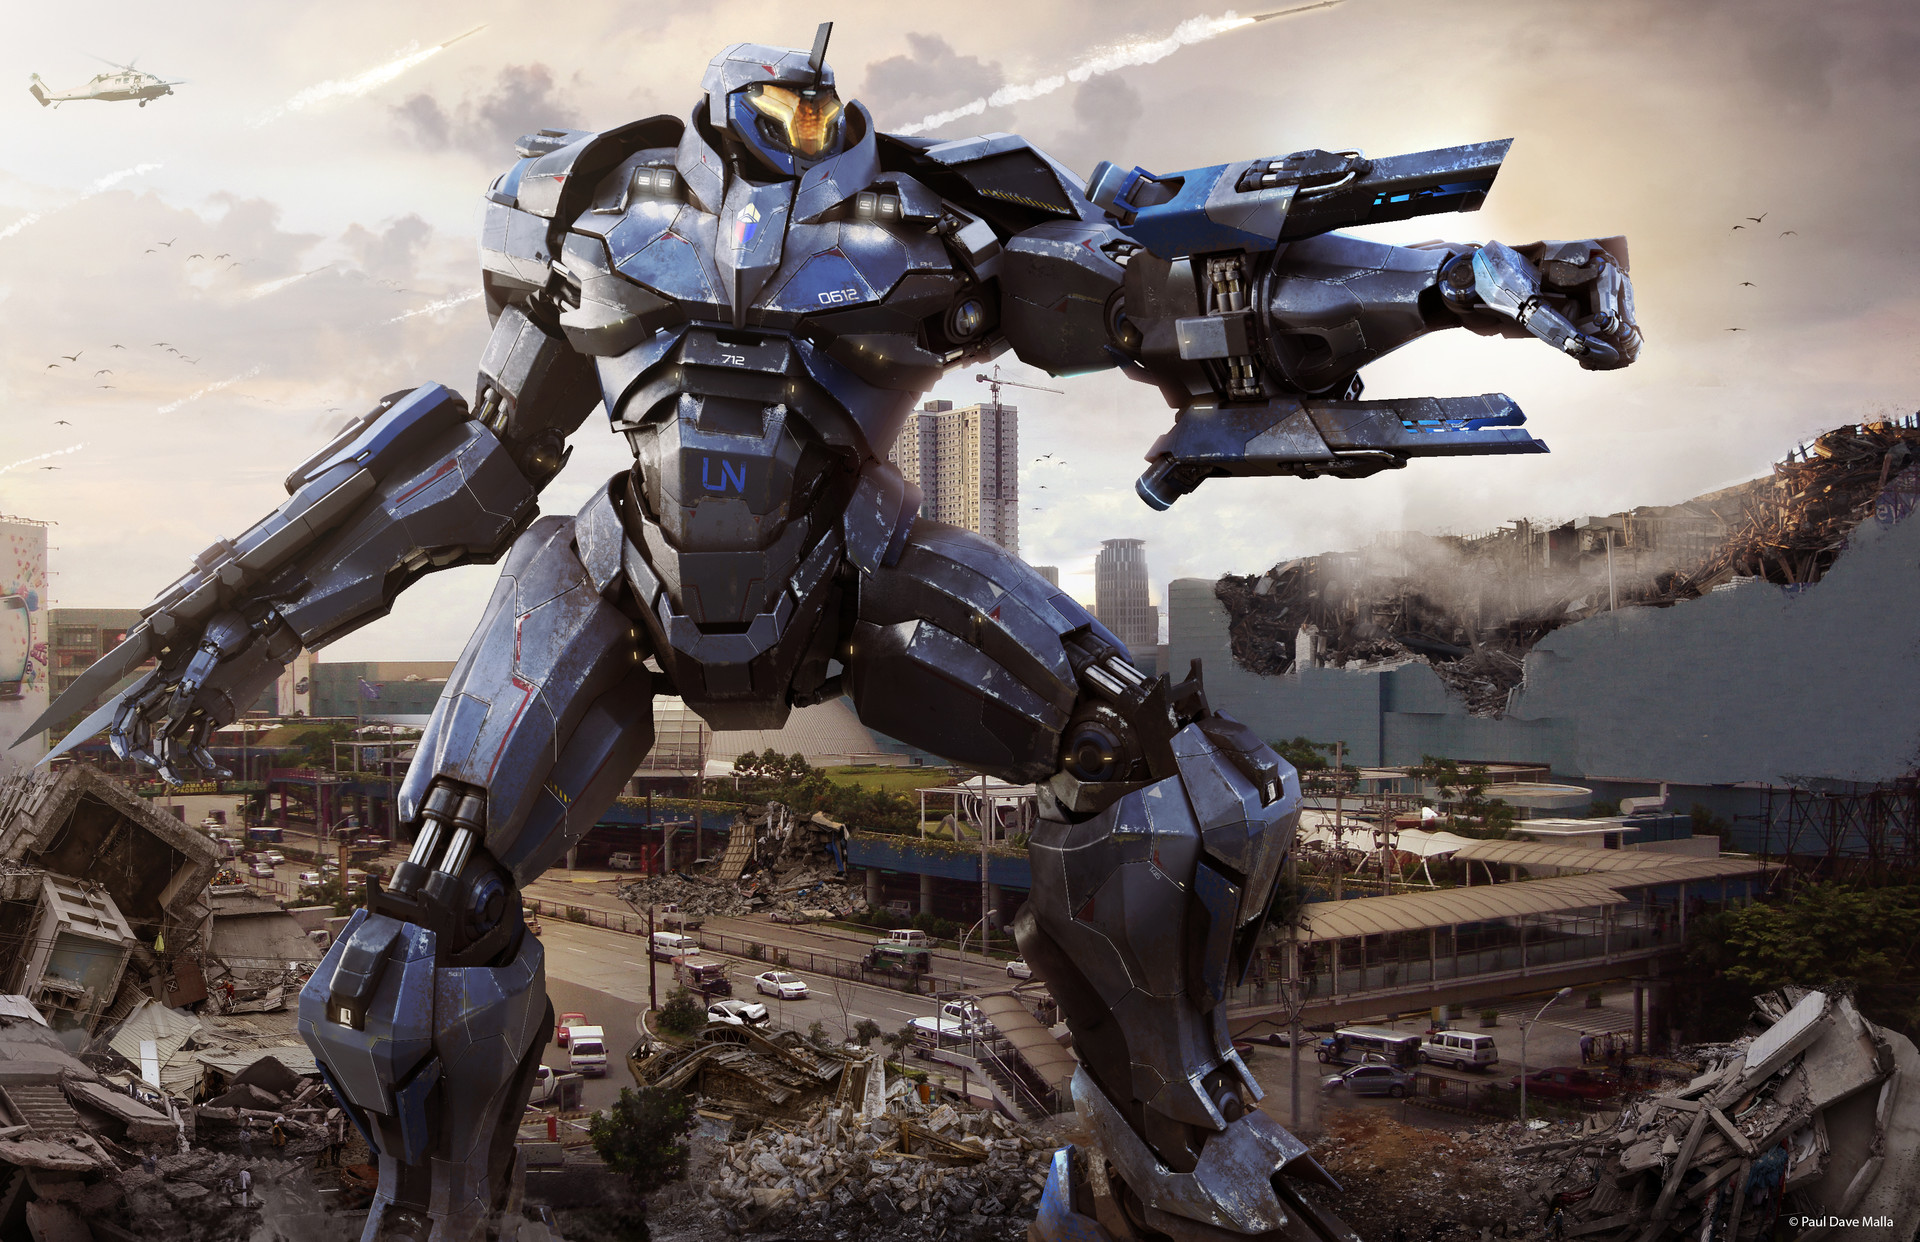 artstation astrion m5 jaeger pacific rim paul dave malla